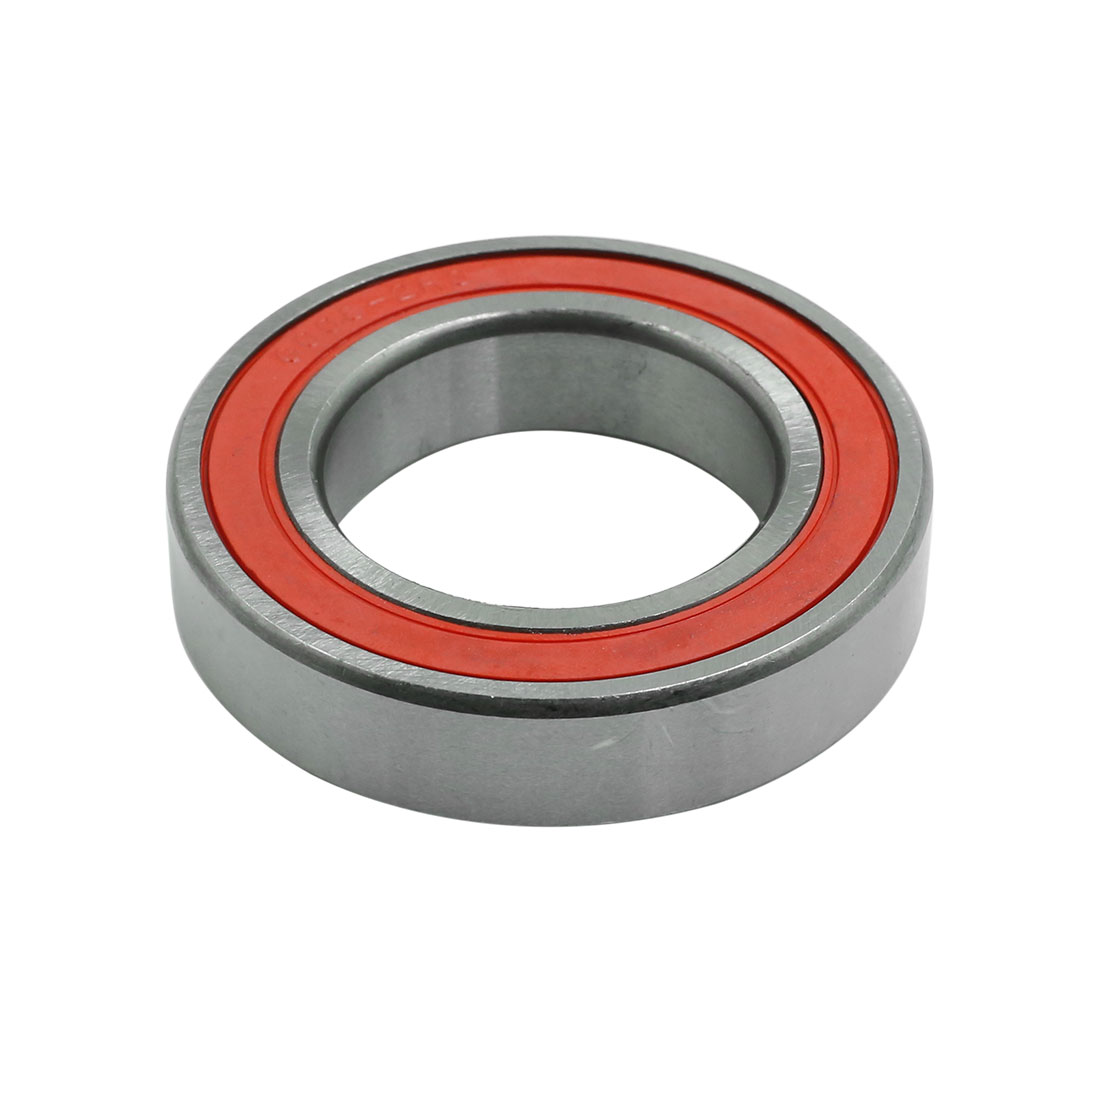 Universal 6008-2RS Deep Groove Double Shielded Ball Bearing 68 x 40 x 15mm - image 1 of 3